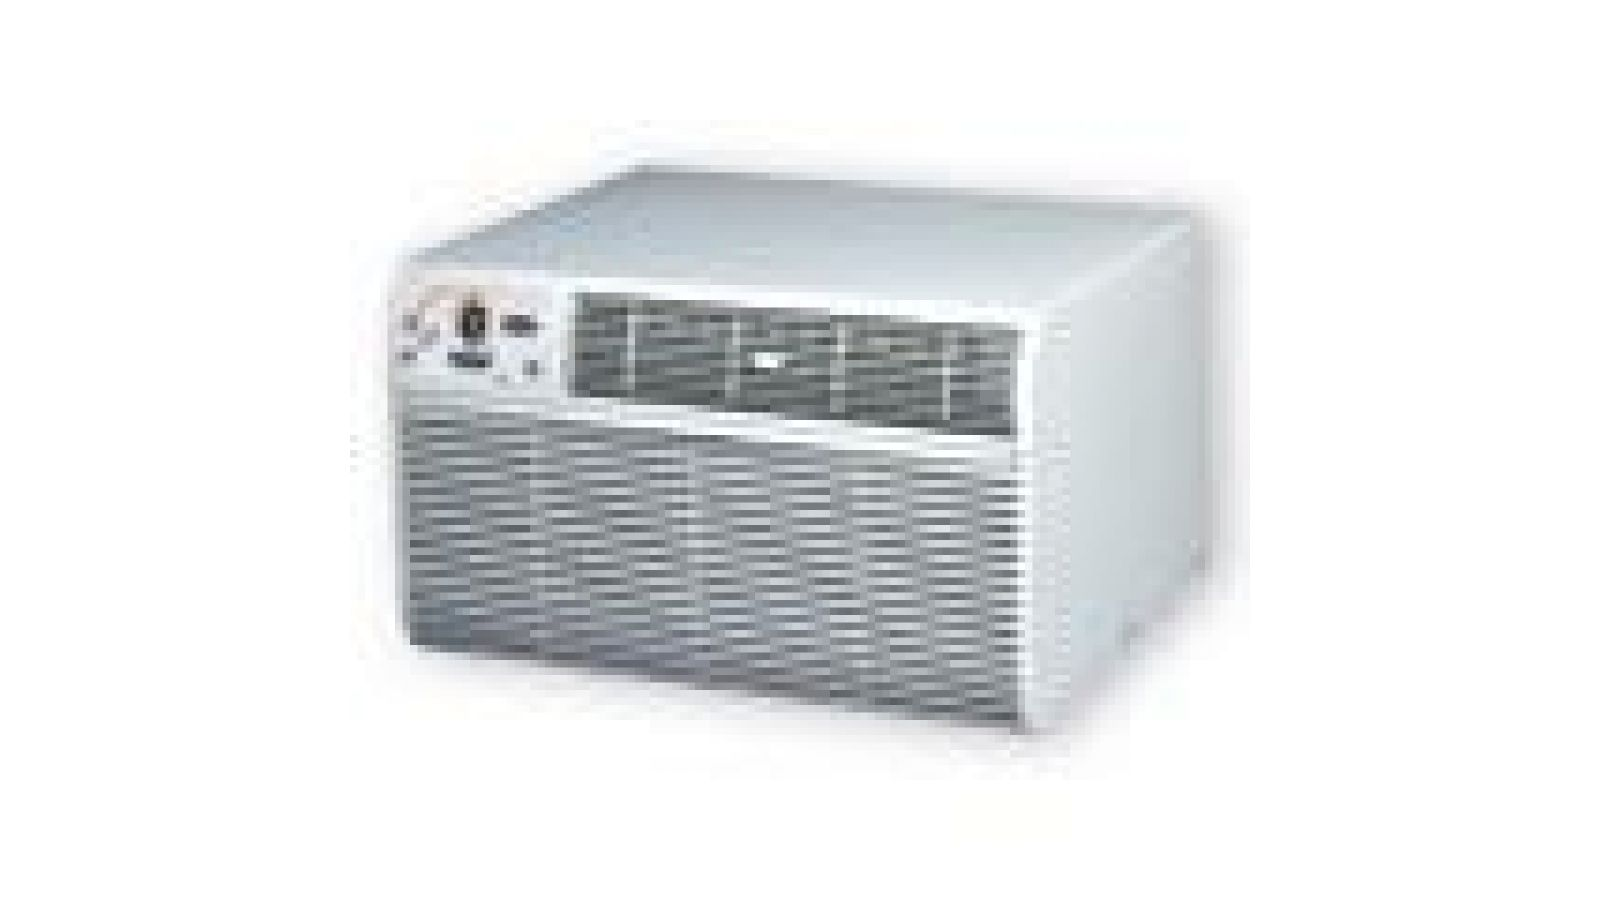 52F Solid Side Packaged Terminal Air Conditioner